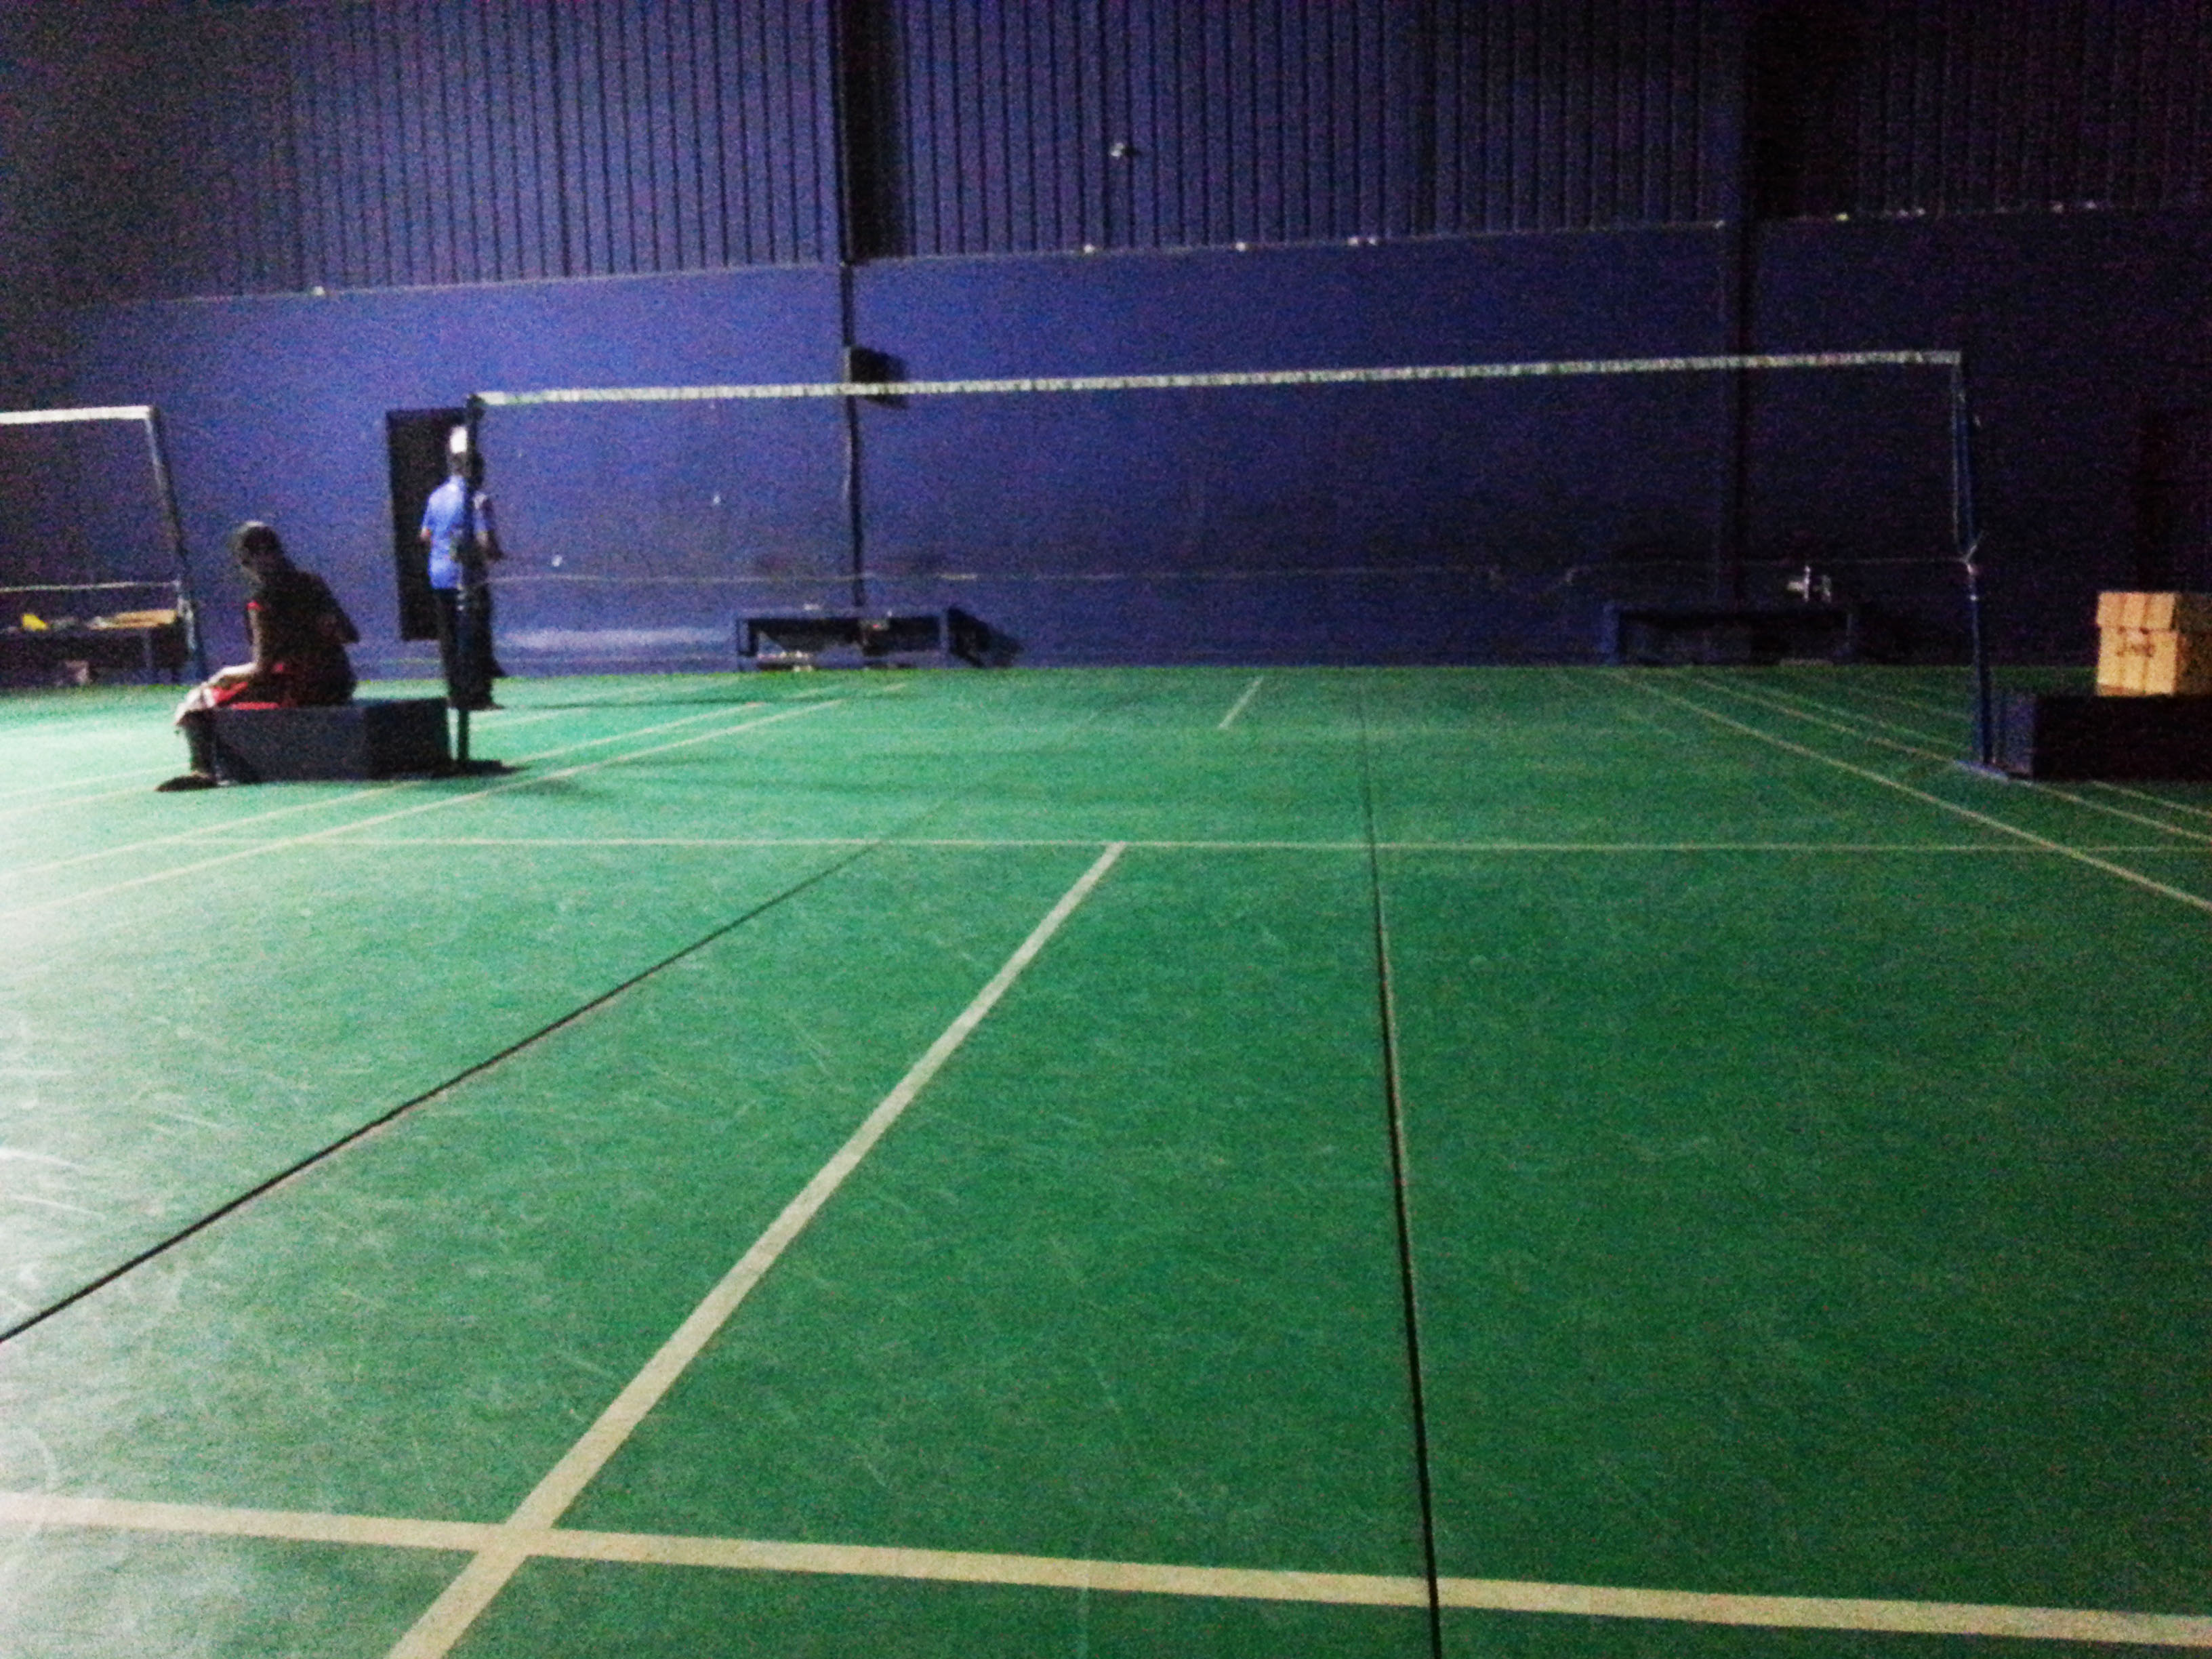 Layout of the Badminton Court at the venue